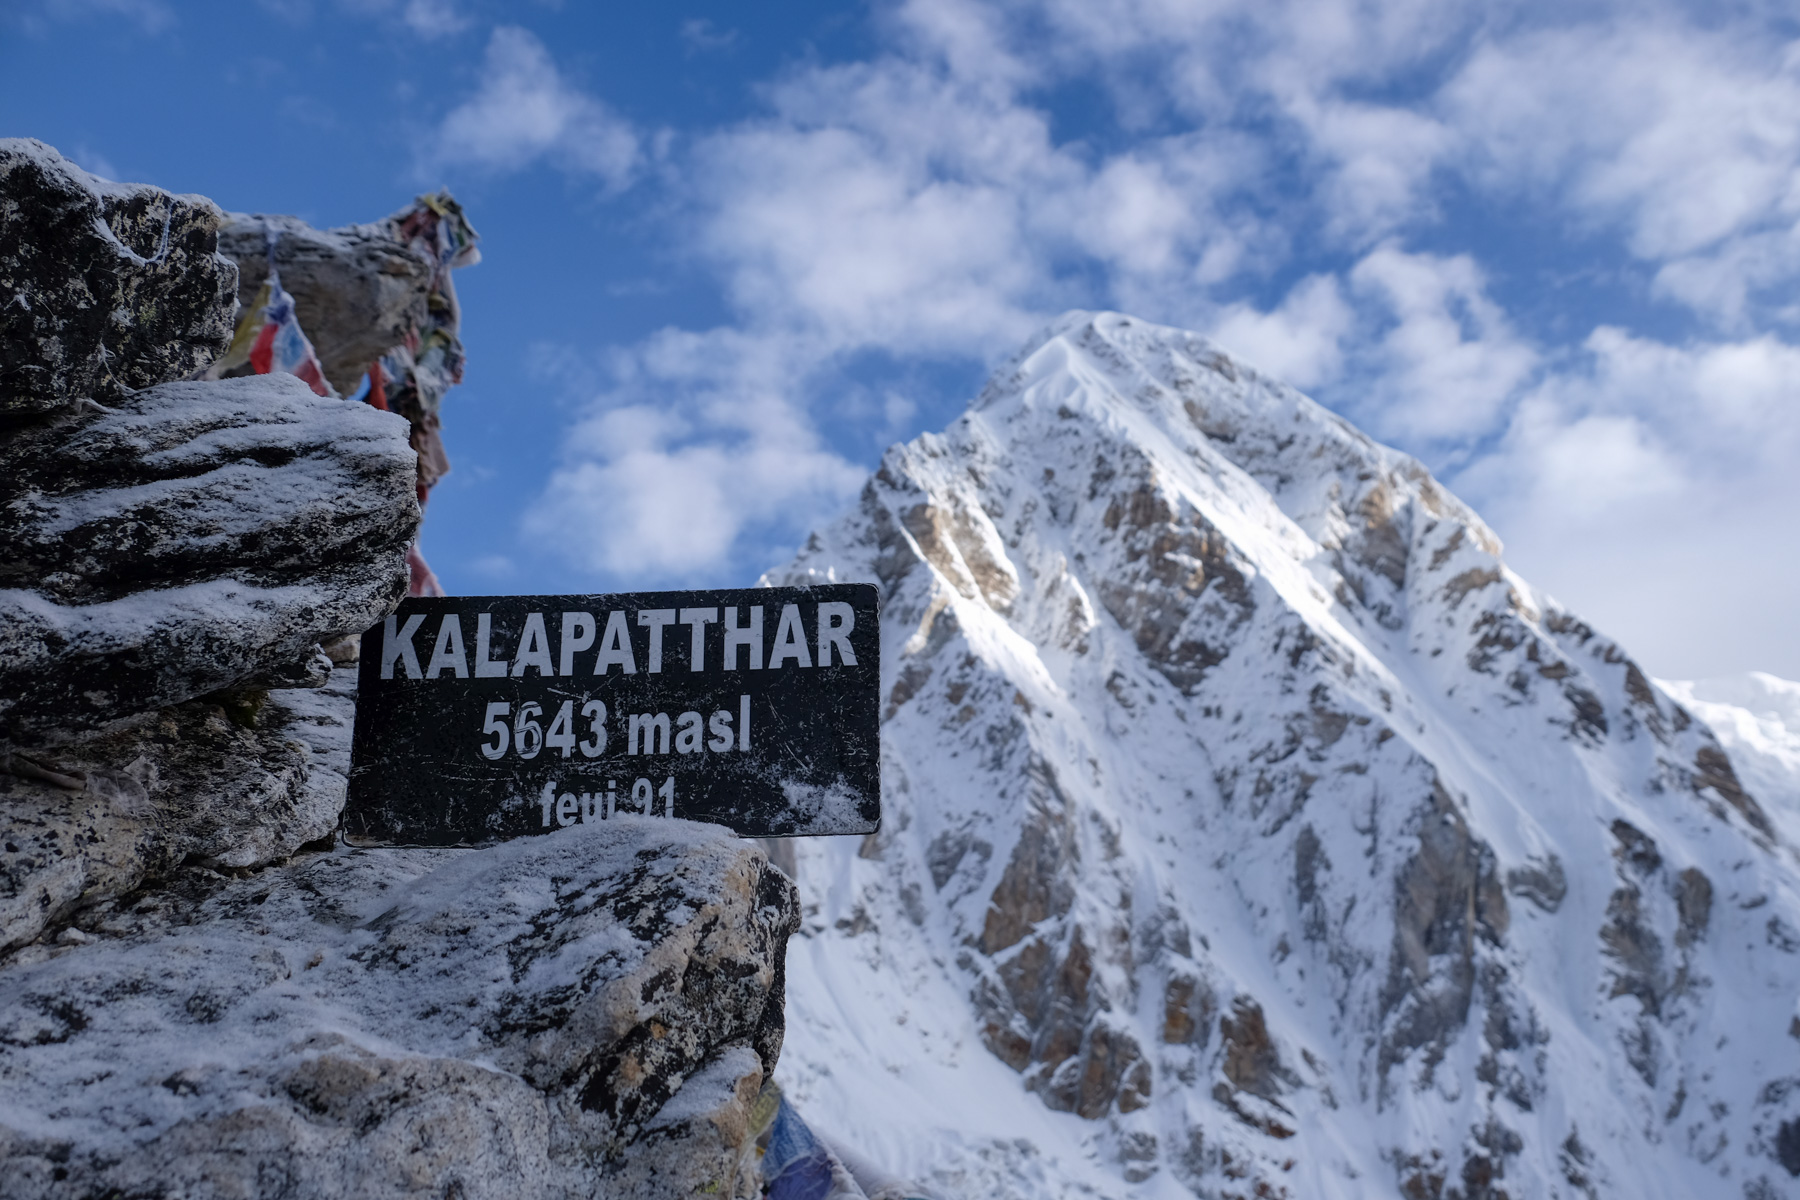 Kala Patthar & Gokyo, Everest 3 pass #3 1